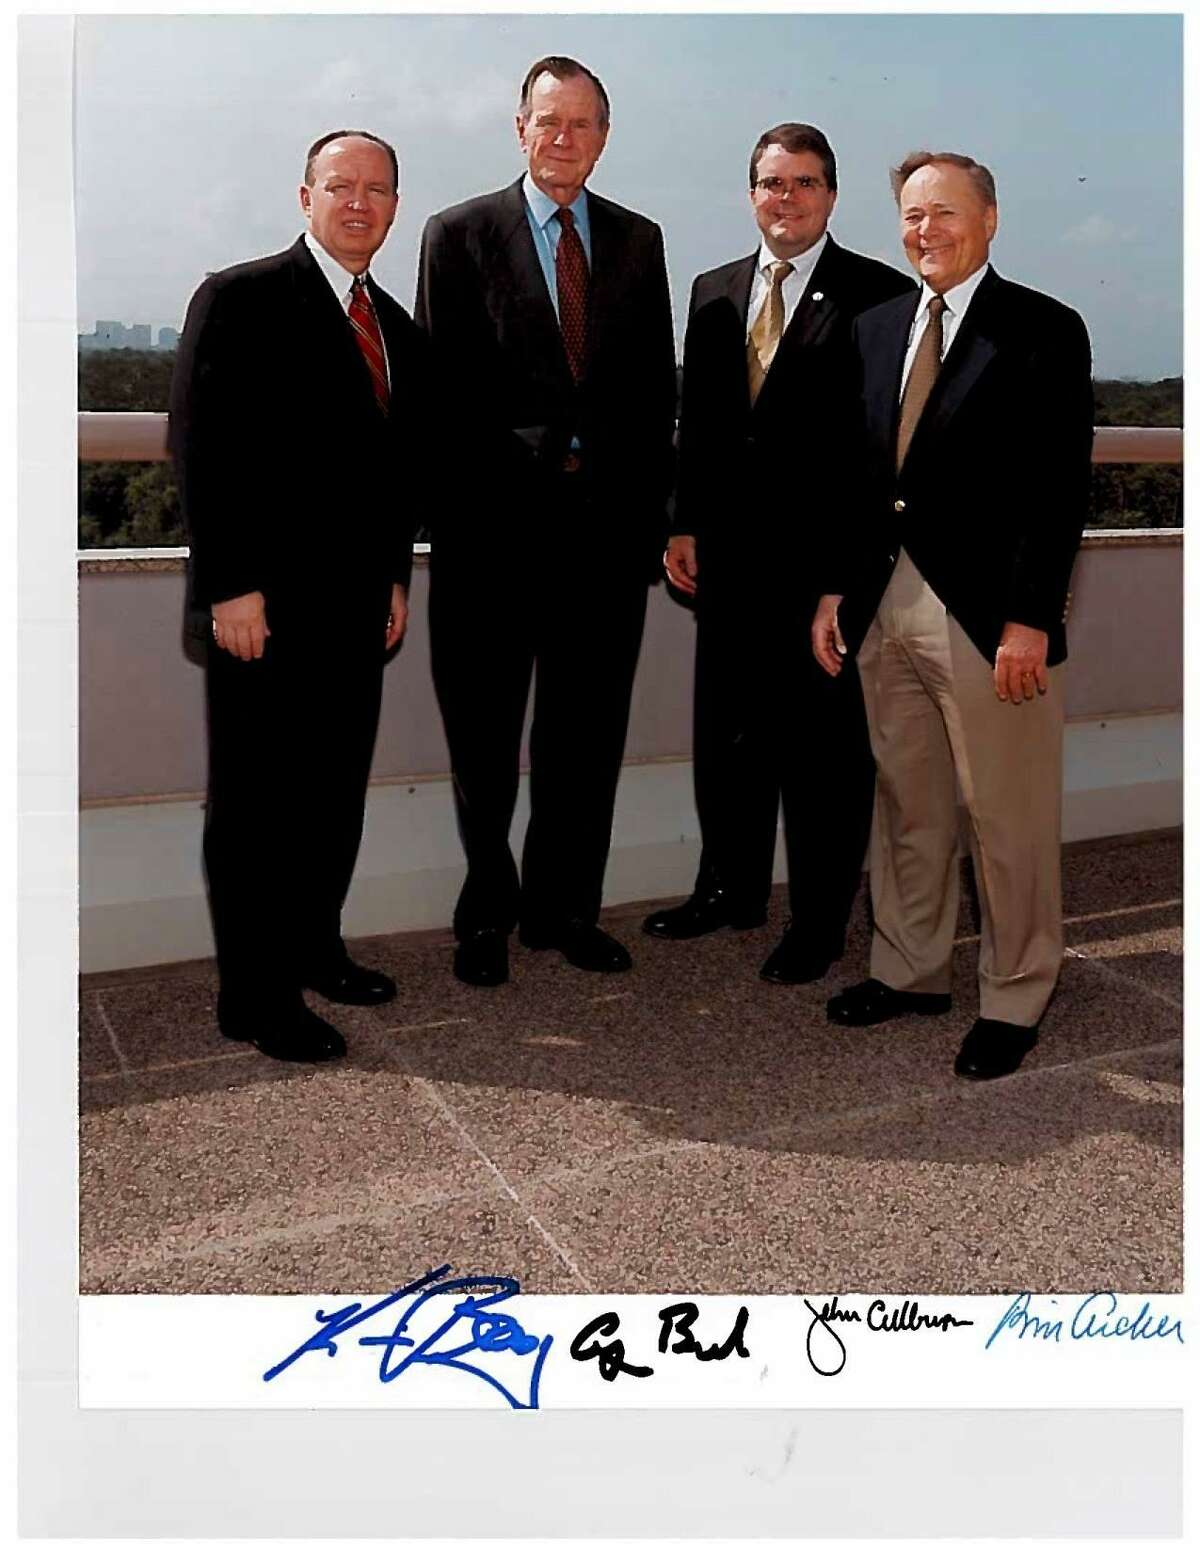 Former President George H.W. Bush poses in 2000 with Rep. Kevin Brady, R-The Woodlands. Also pictured are Congressman John Culberson and to the right of Culberson is former Ways & Means Chairman and Texas Congressman Bill Archer.